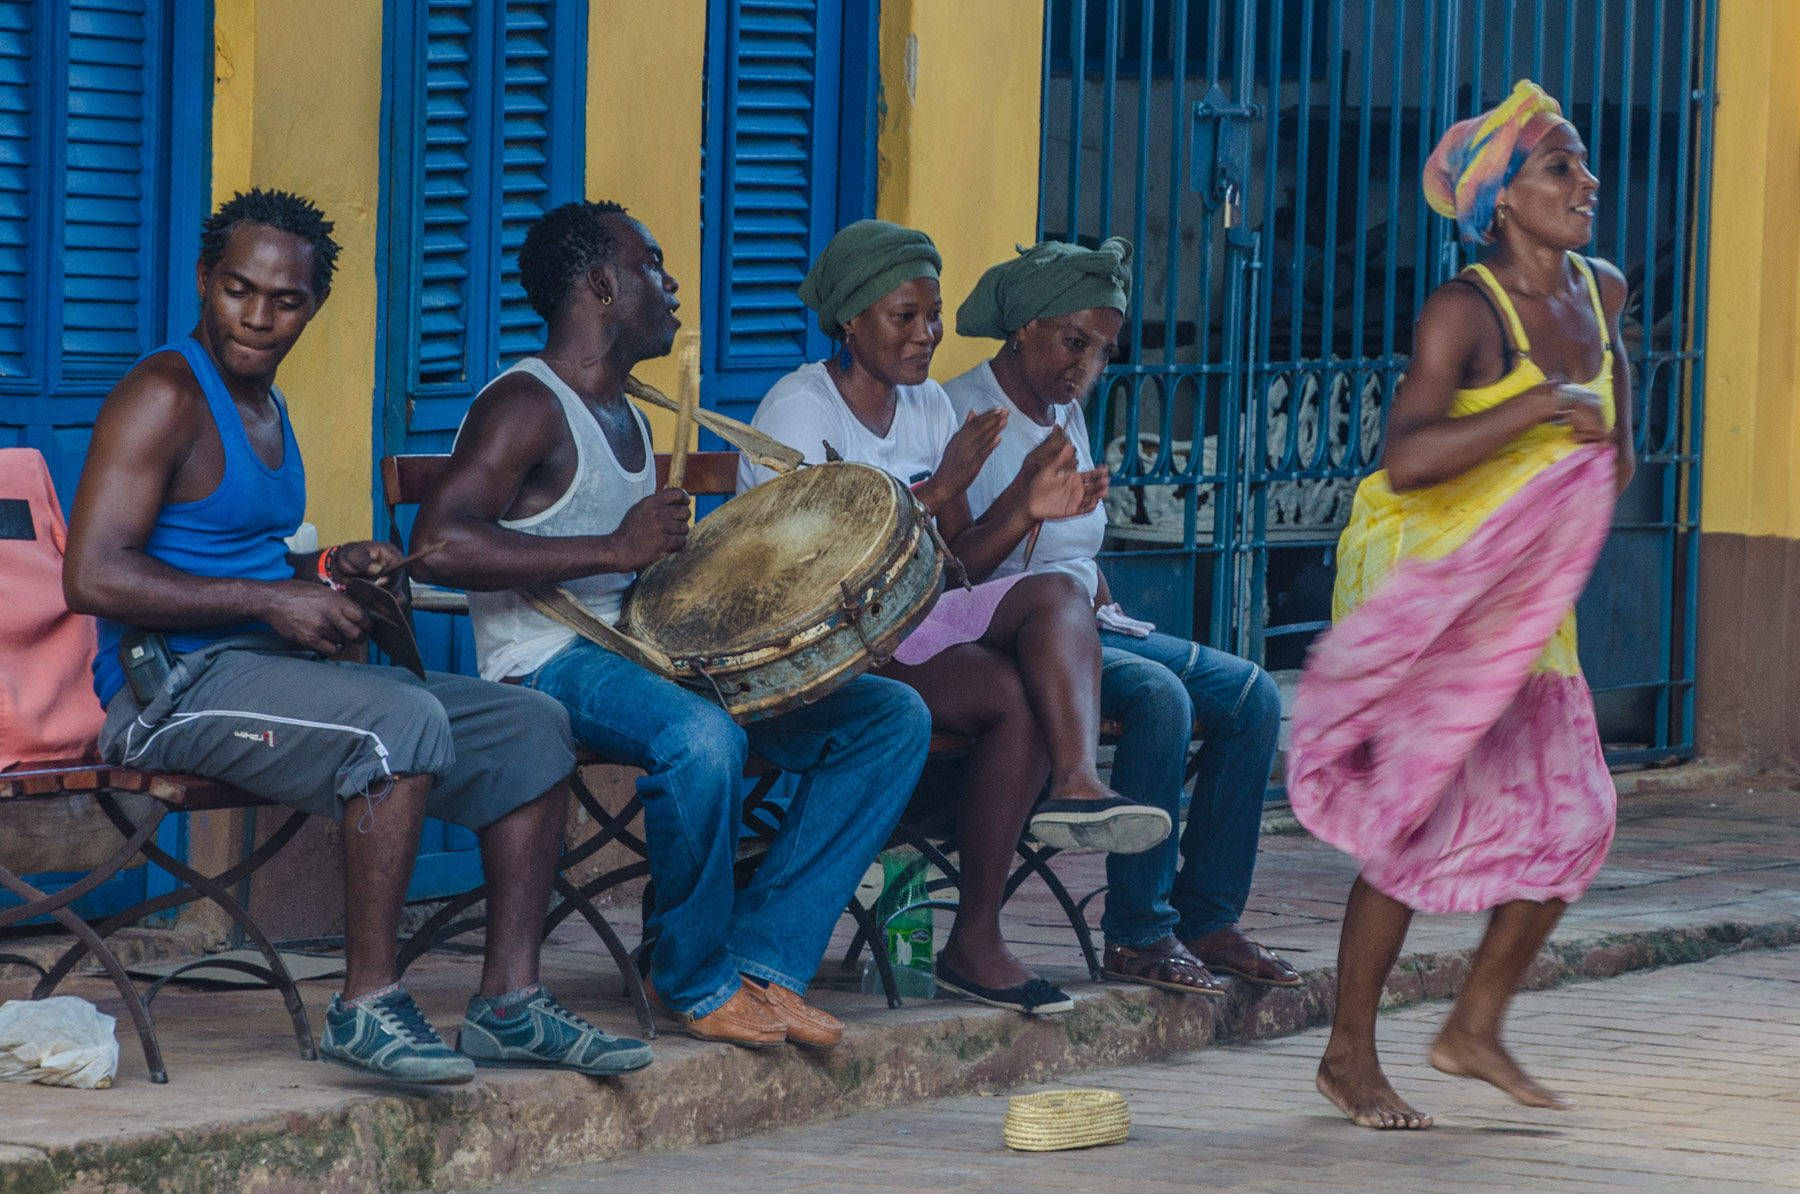 Musicians and Dancer, Trinidad, Cuba